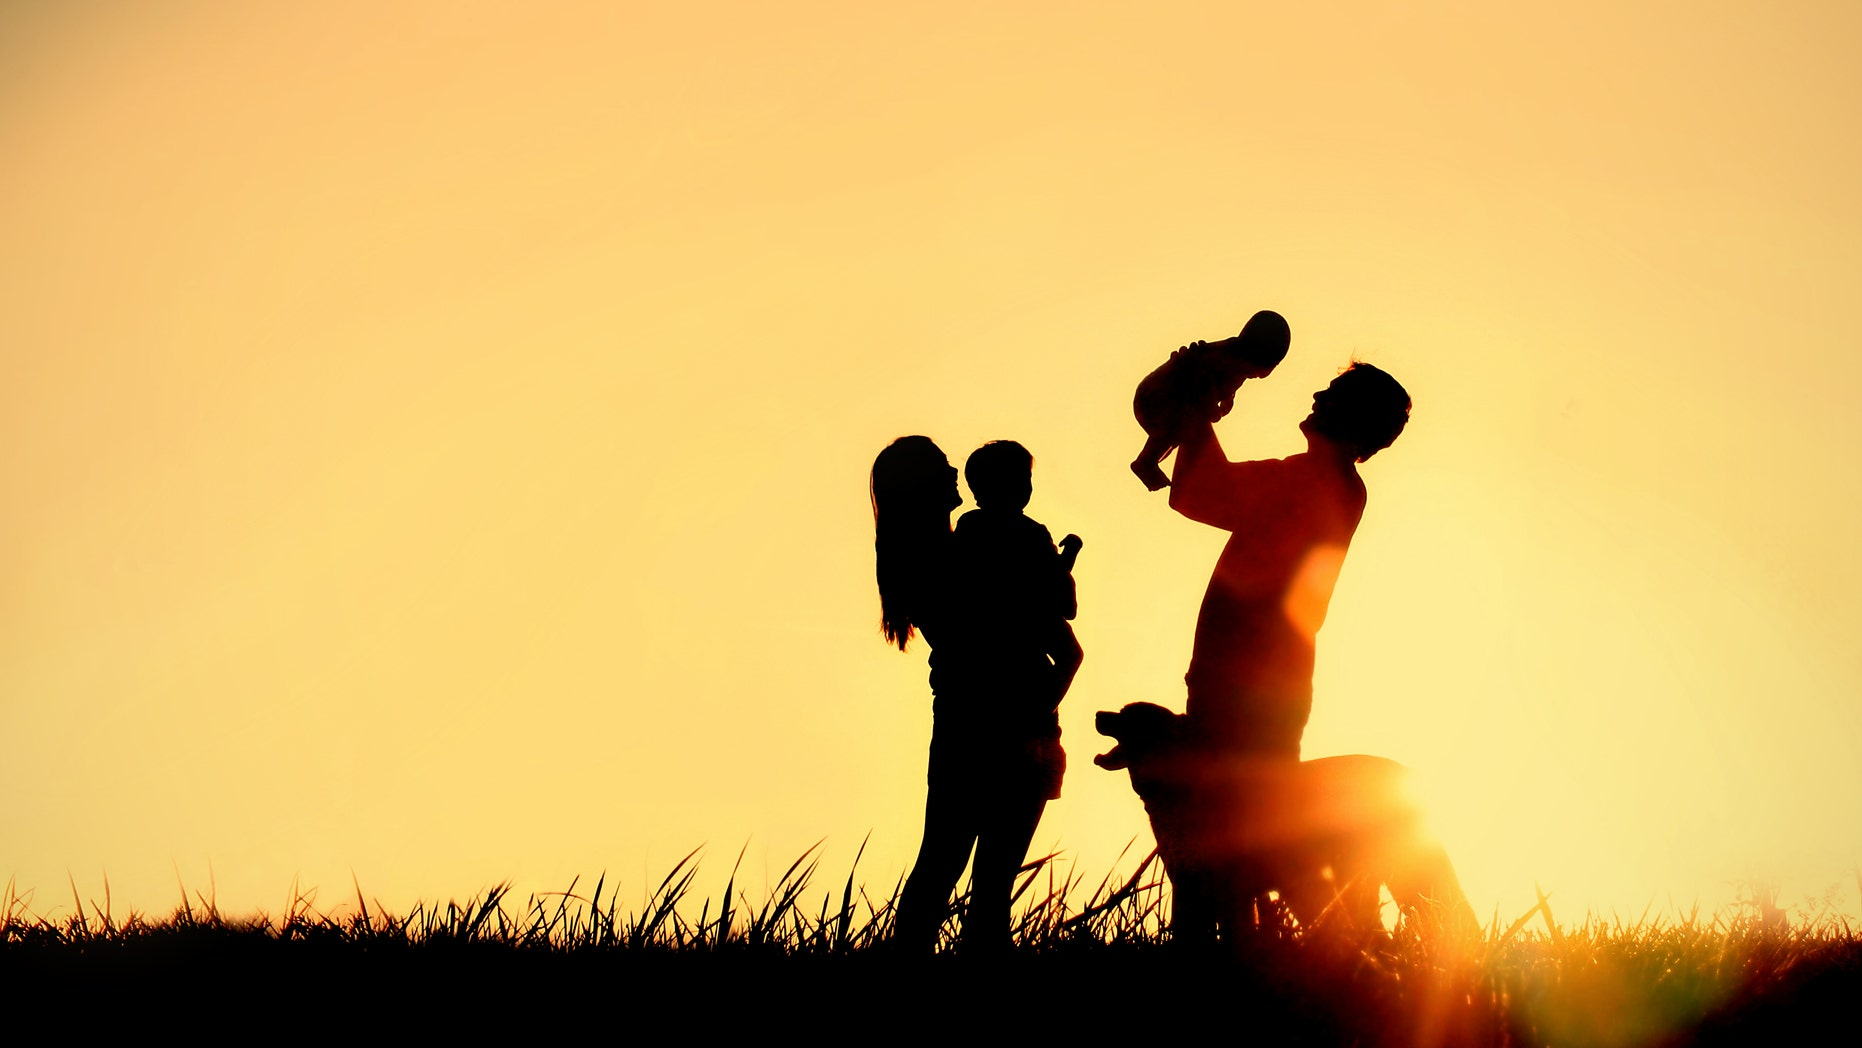 A silhouette of a happy family of four people, mother, father, baby, and child, and their dog in front of a sunsetting sky, with room for copy space or text